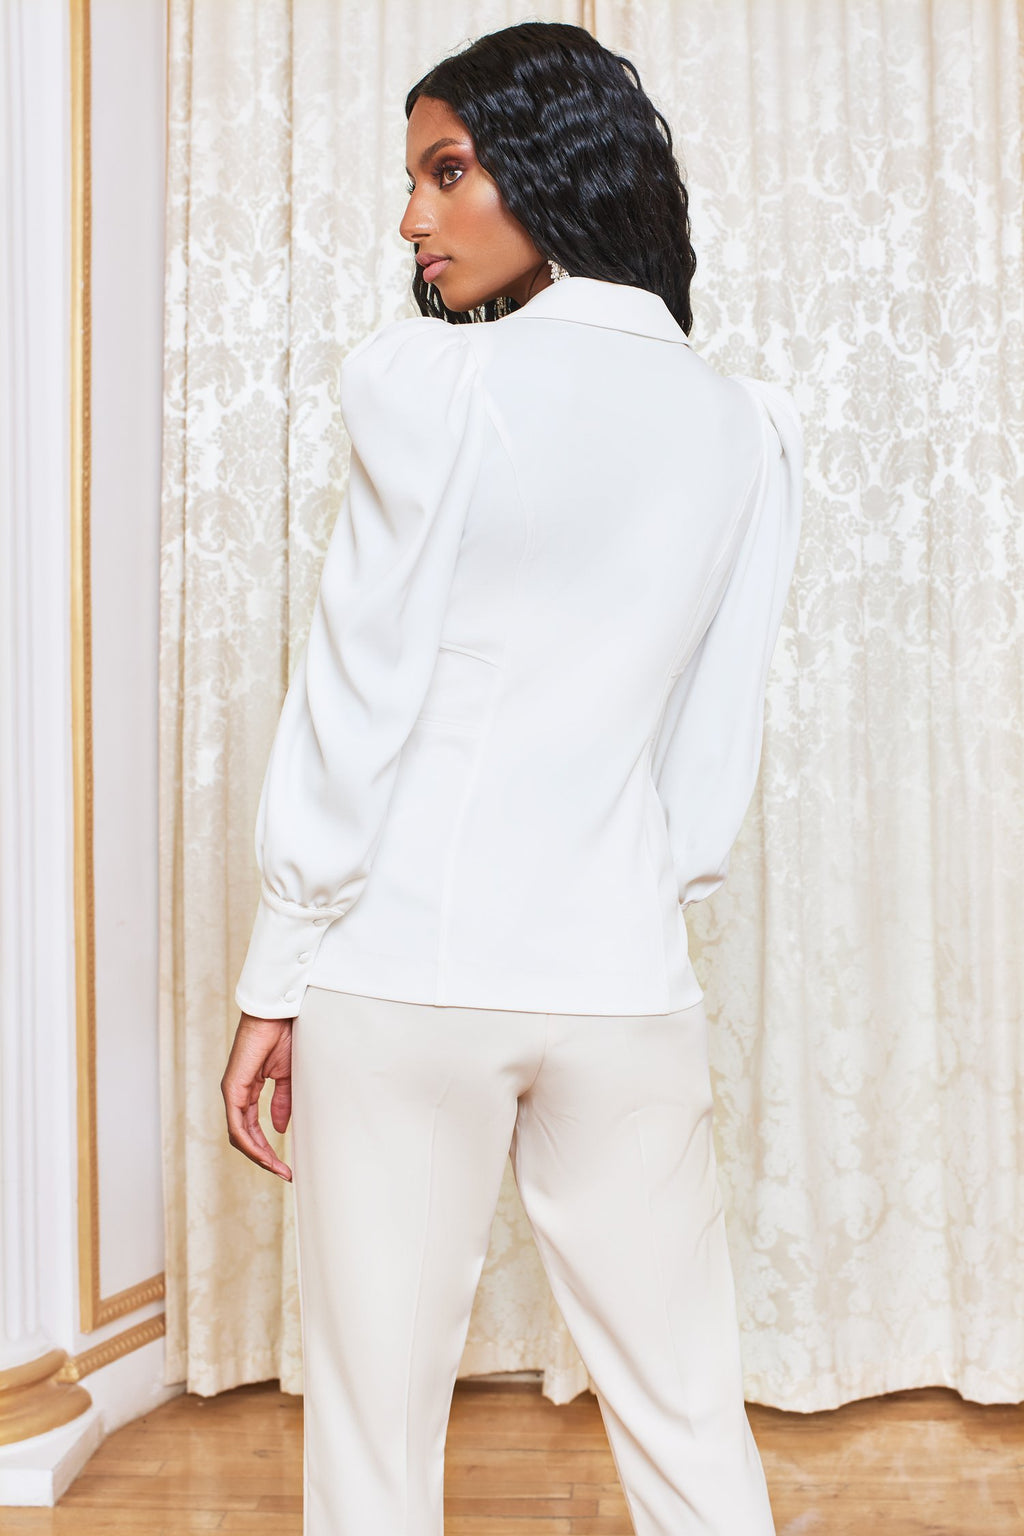 Puff sleeve shirt in white